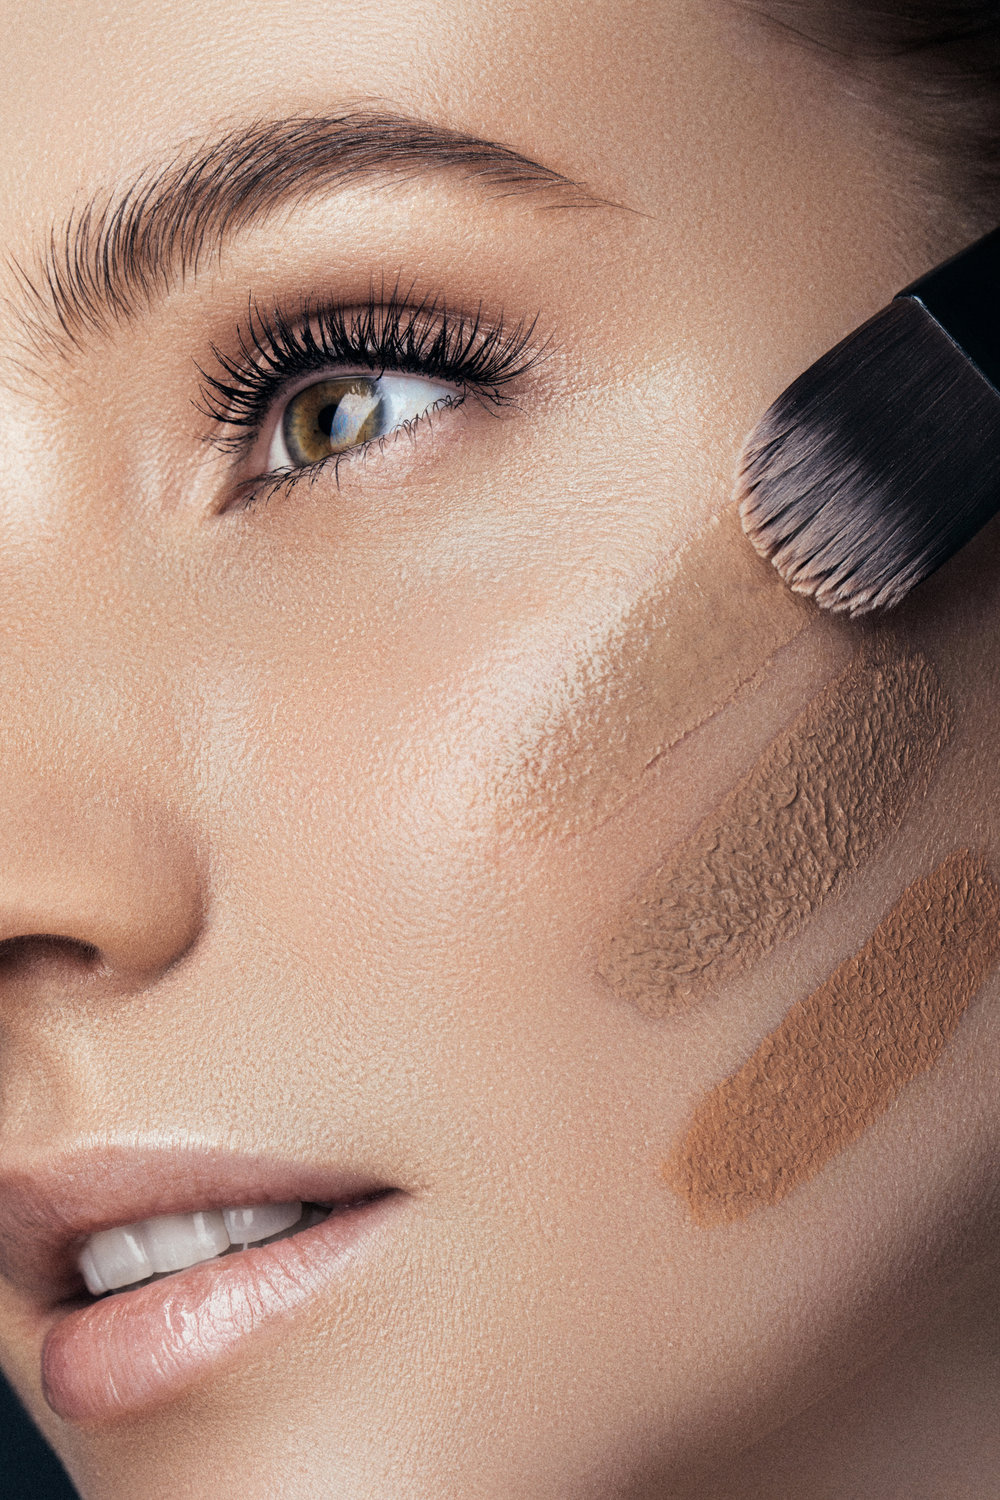 Foundations - Applying the right foundation, tools, techniques and finishes recommended for your skin type